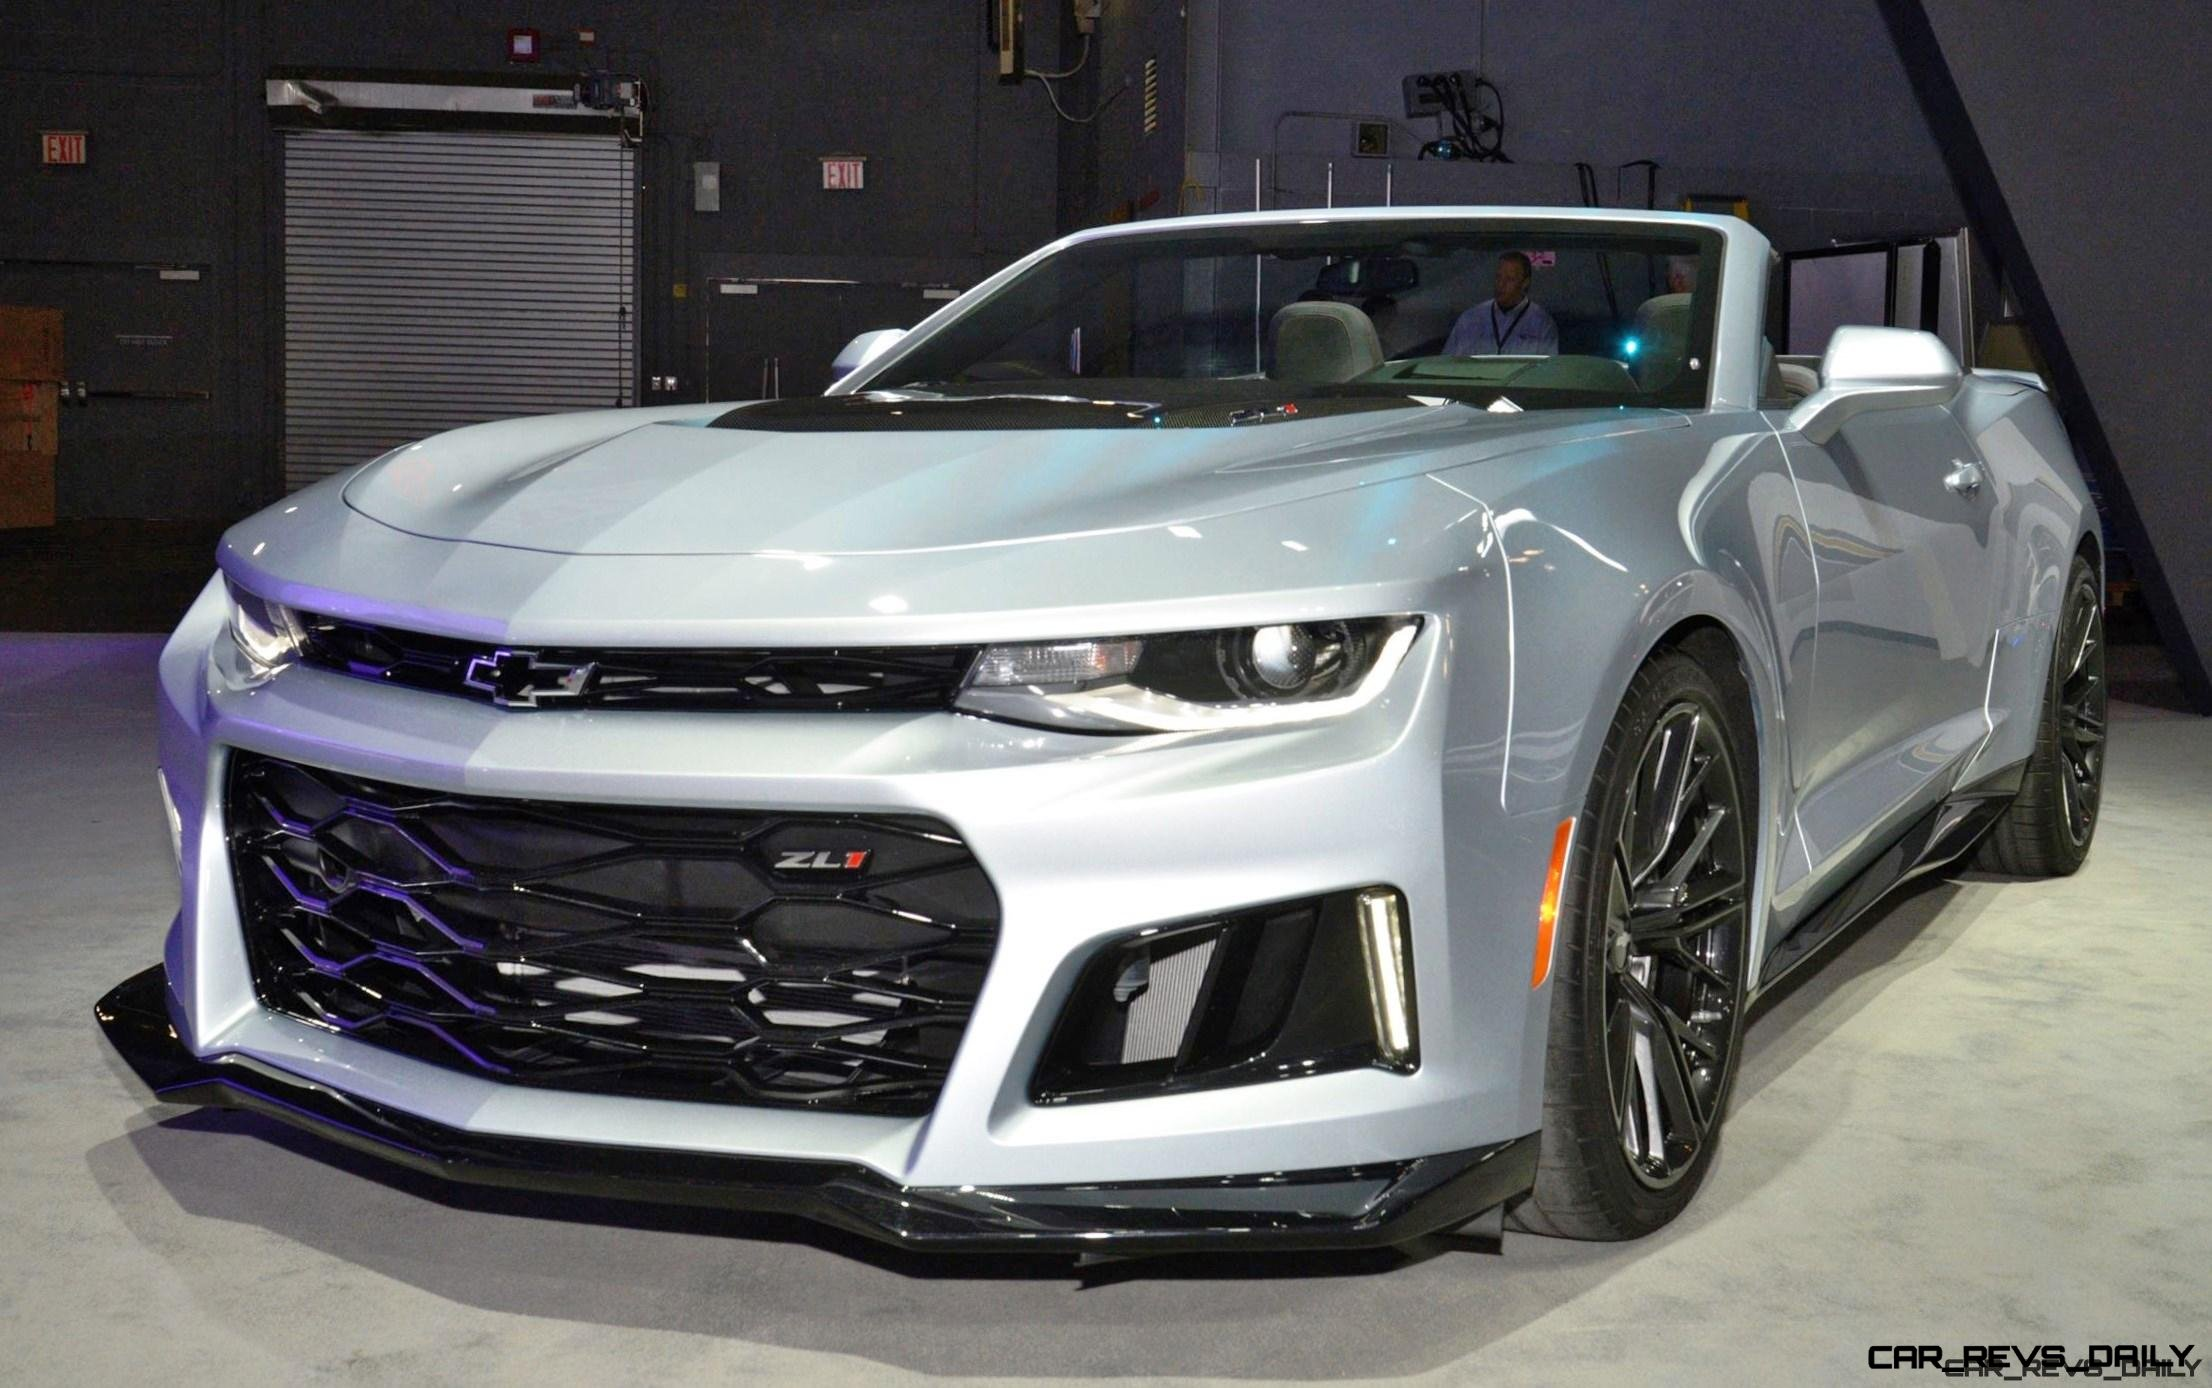 Hellcat 2018 Chevy Camaro >> ~3.5s 2017 Chevrolet CAMARO ZL1 Convertible - Live Photos, Tech Details + Track Video